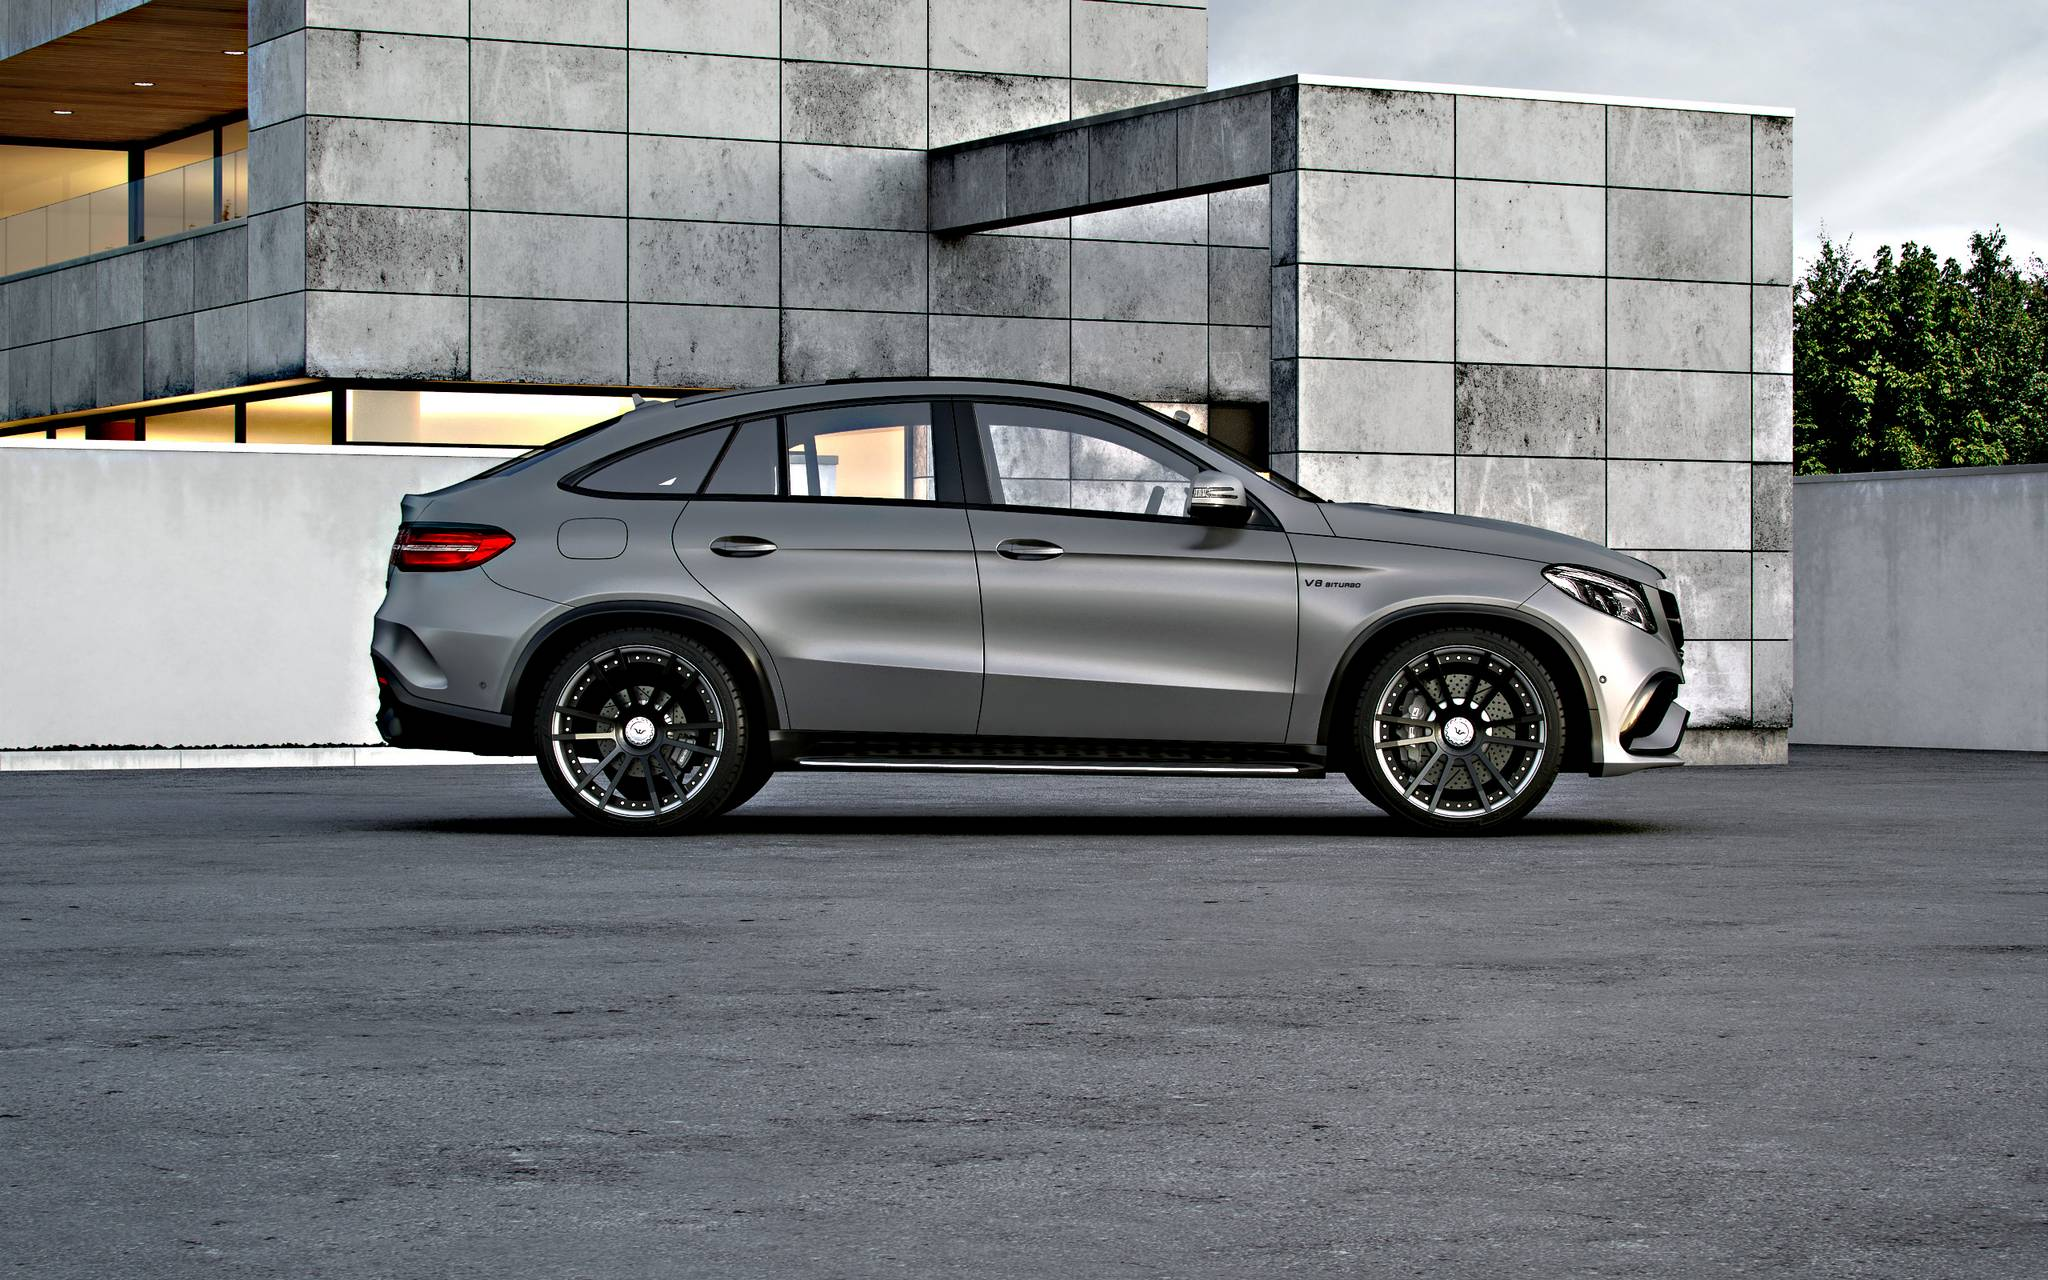 official 792hp mercedes amg gle 63 by wheelsandmore. Black Bedroom Furniture Sets. Home Design Ideas